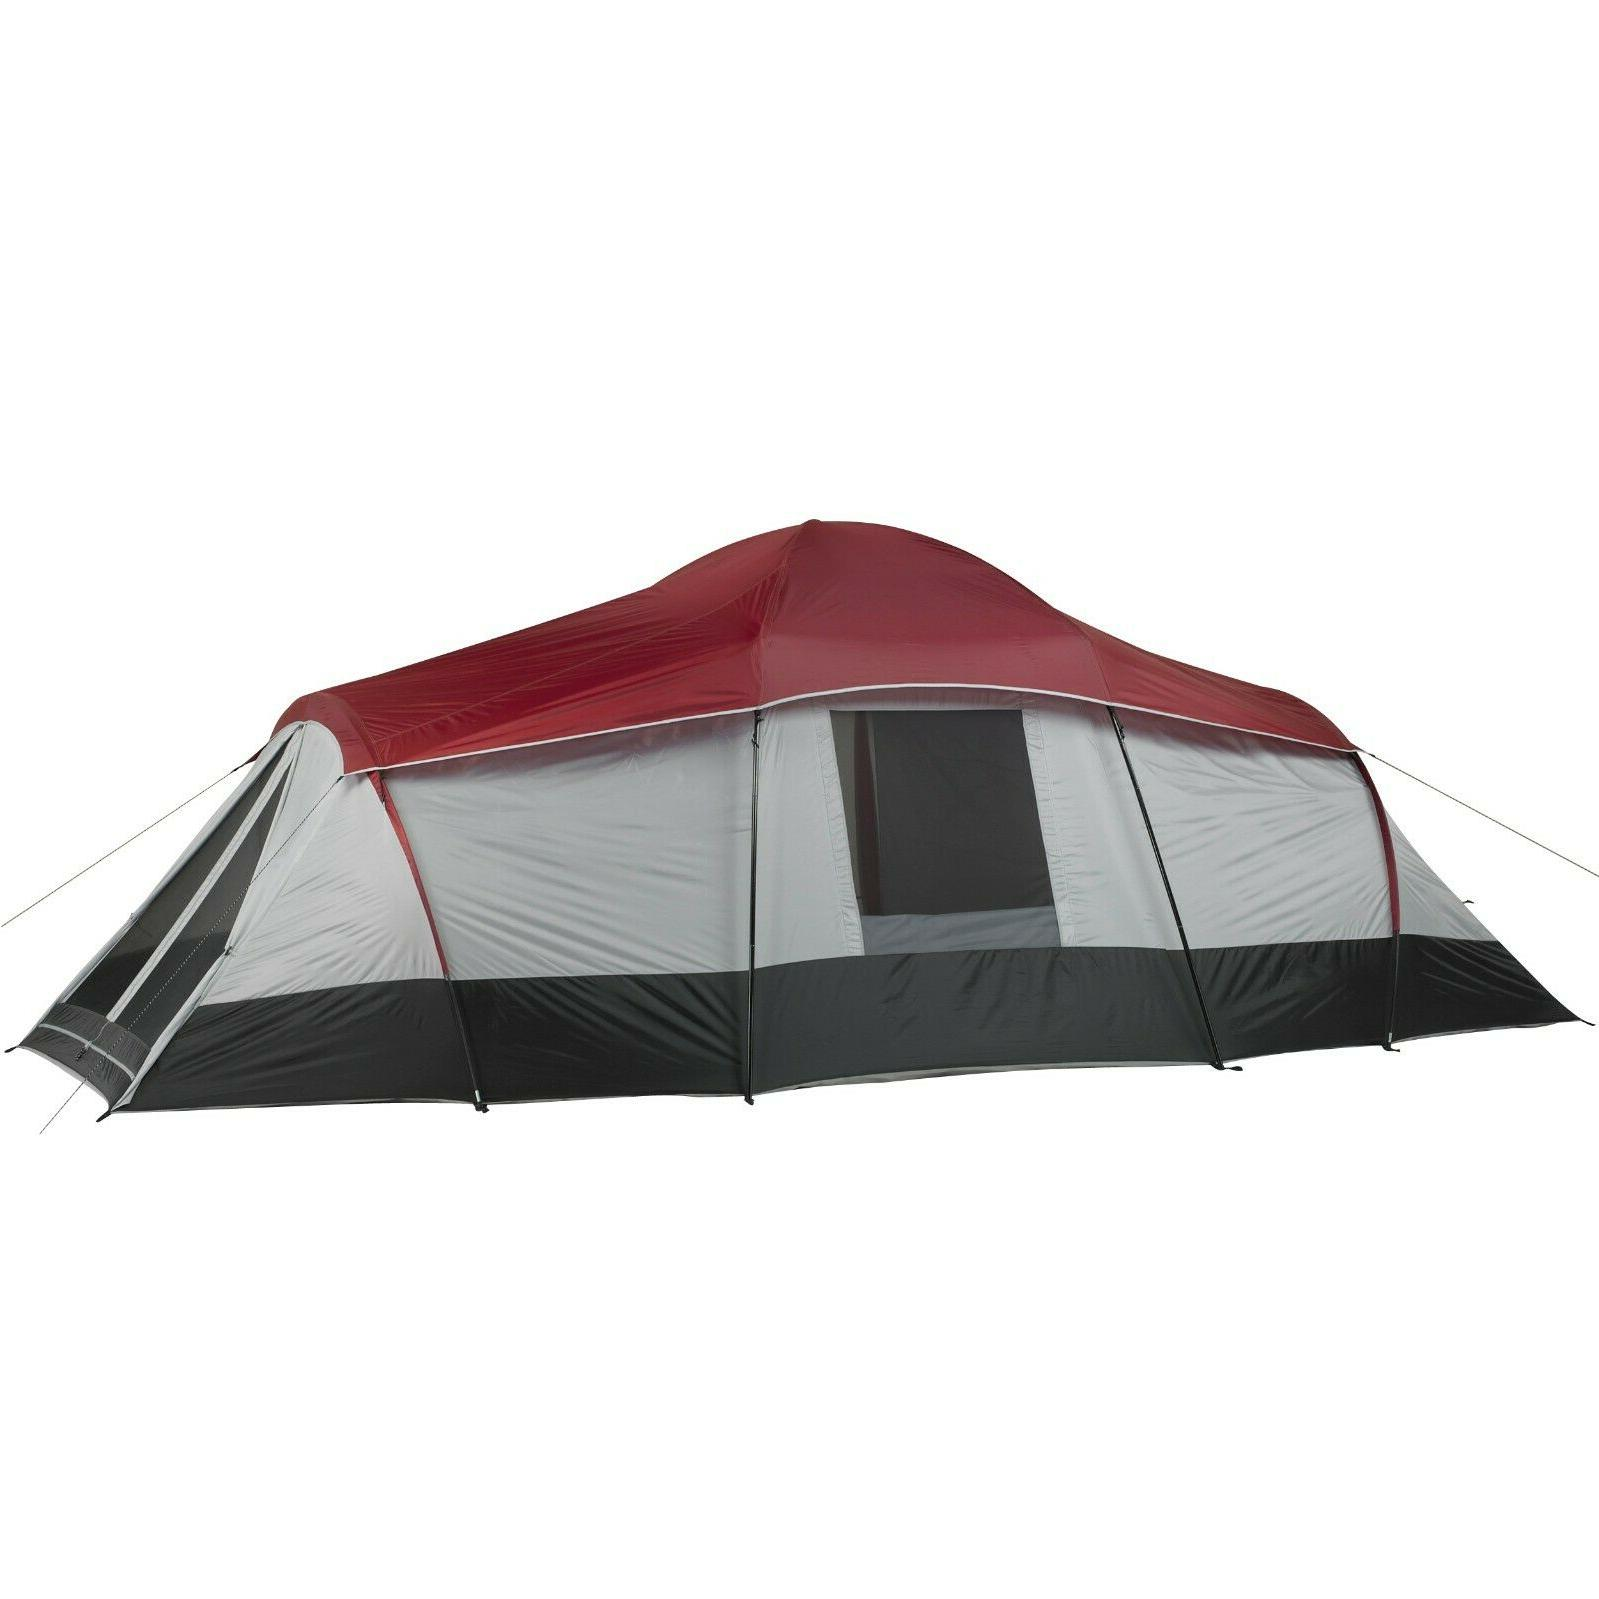 Ozark Trail WMT922.4 10-Person 3-Room XL Family Cabin Tent